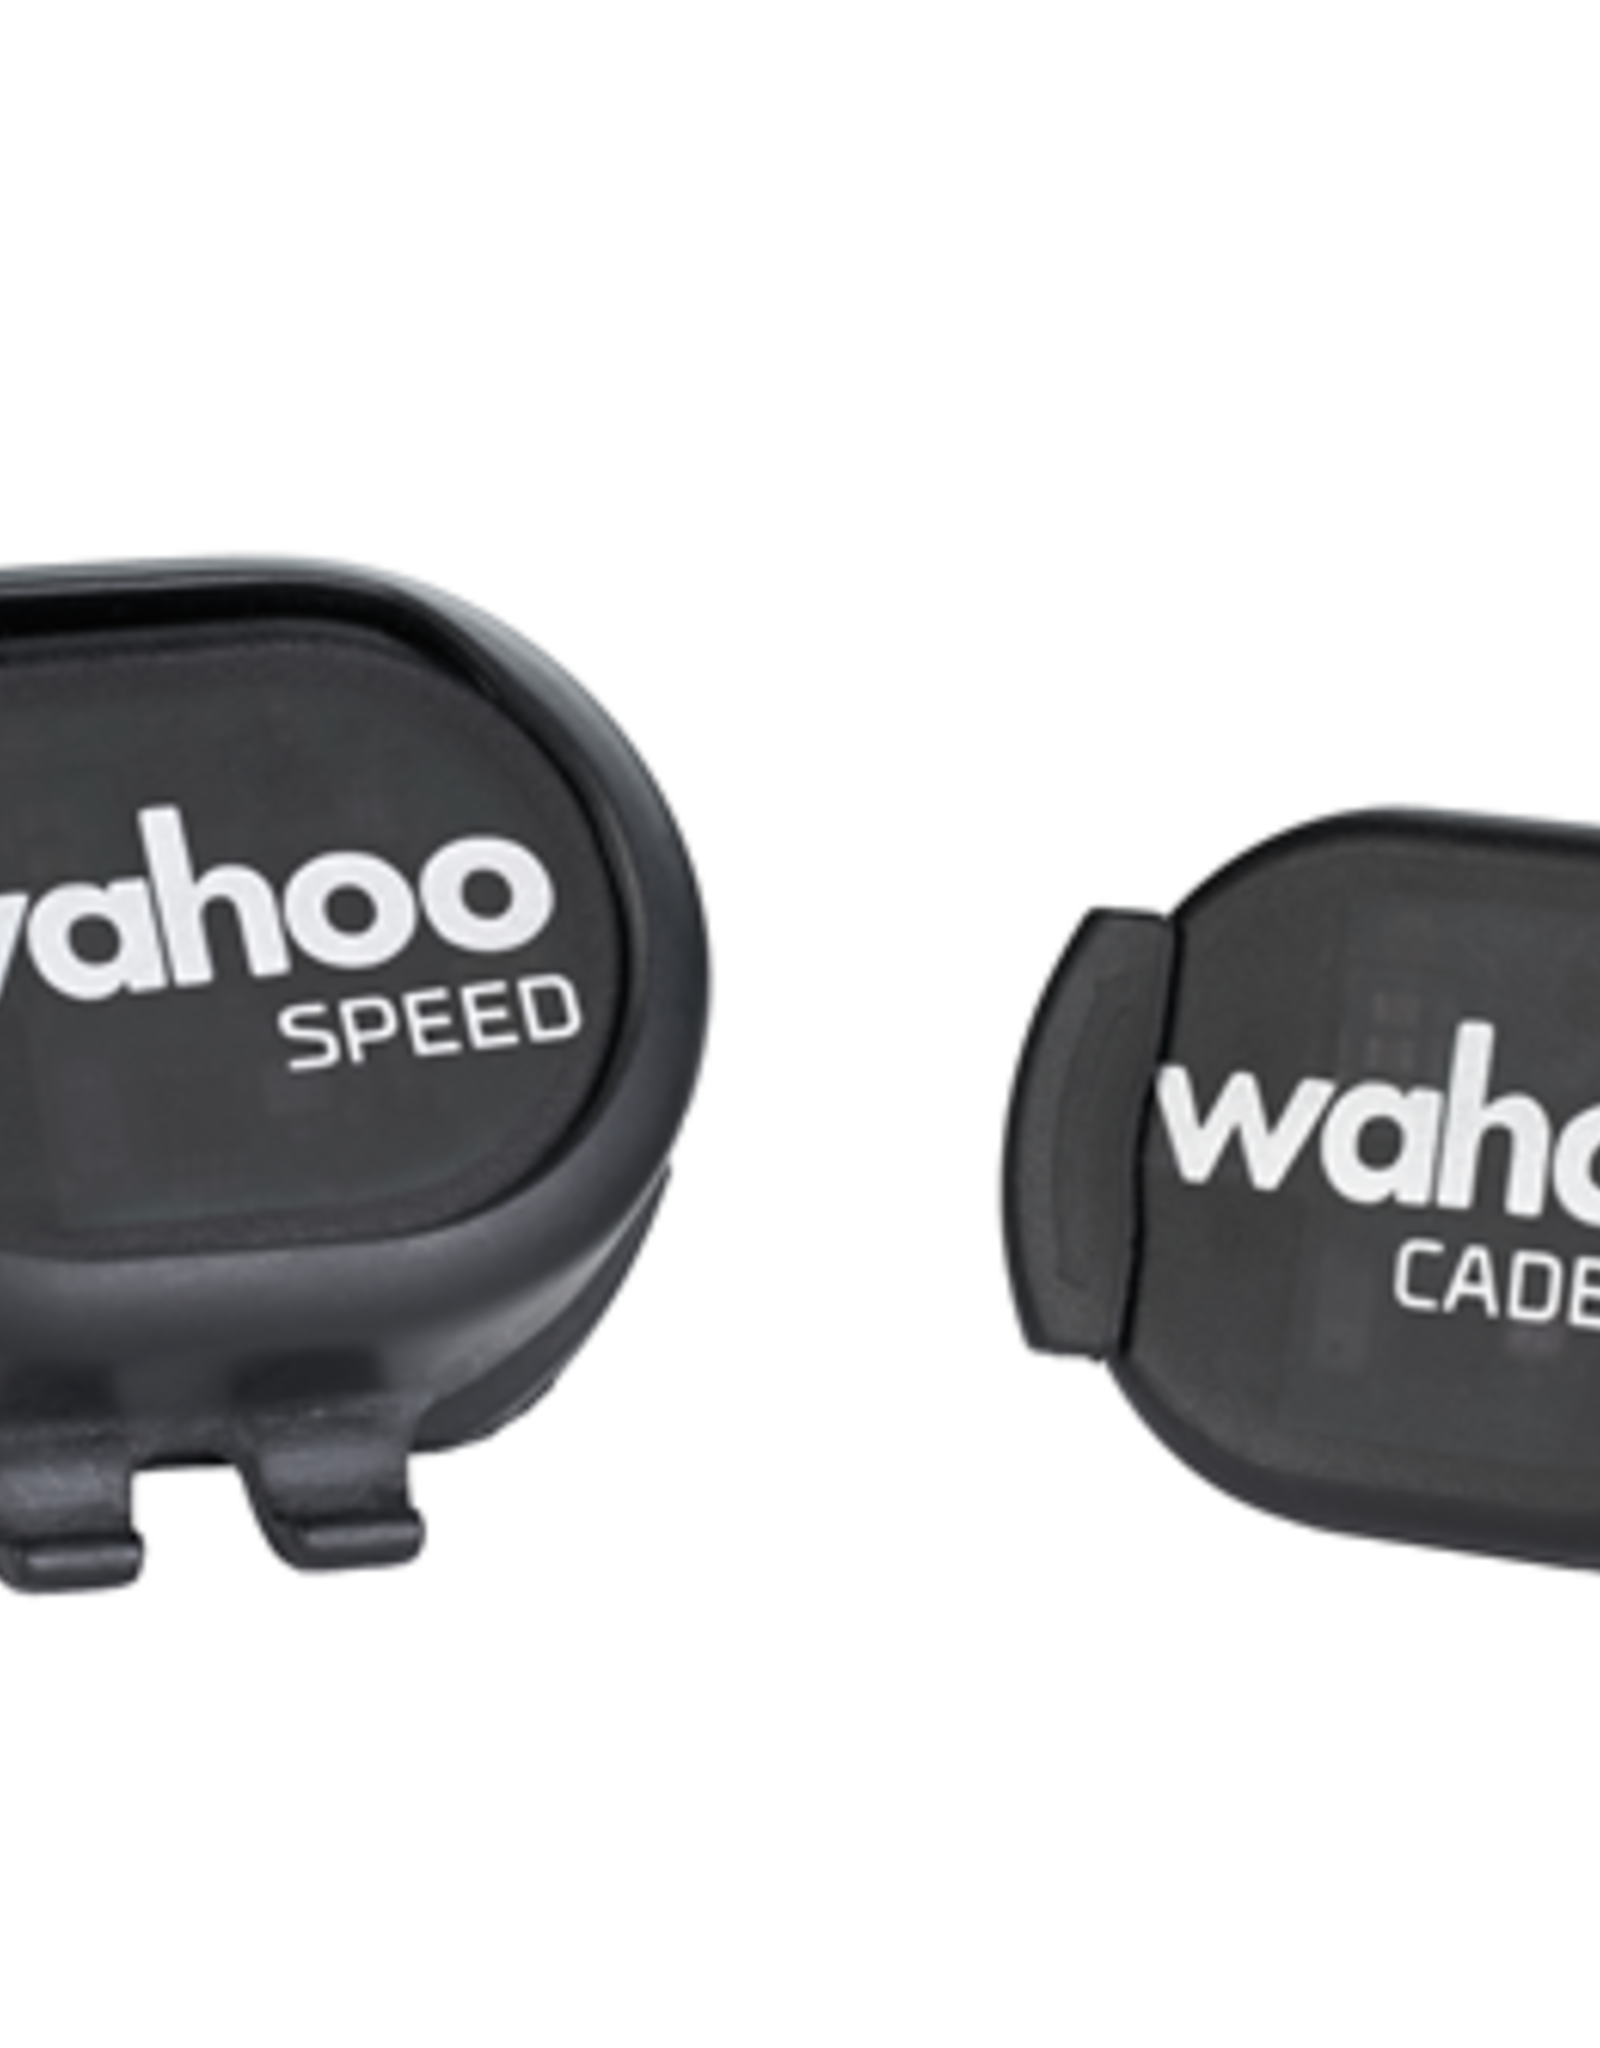 WAHOO WAHOO RPM SPD/CAD BUNDLE